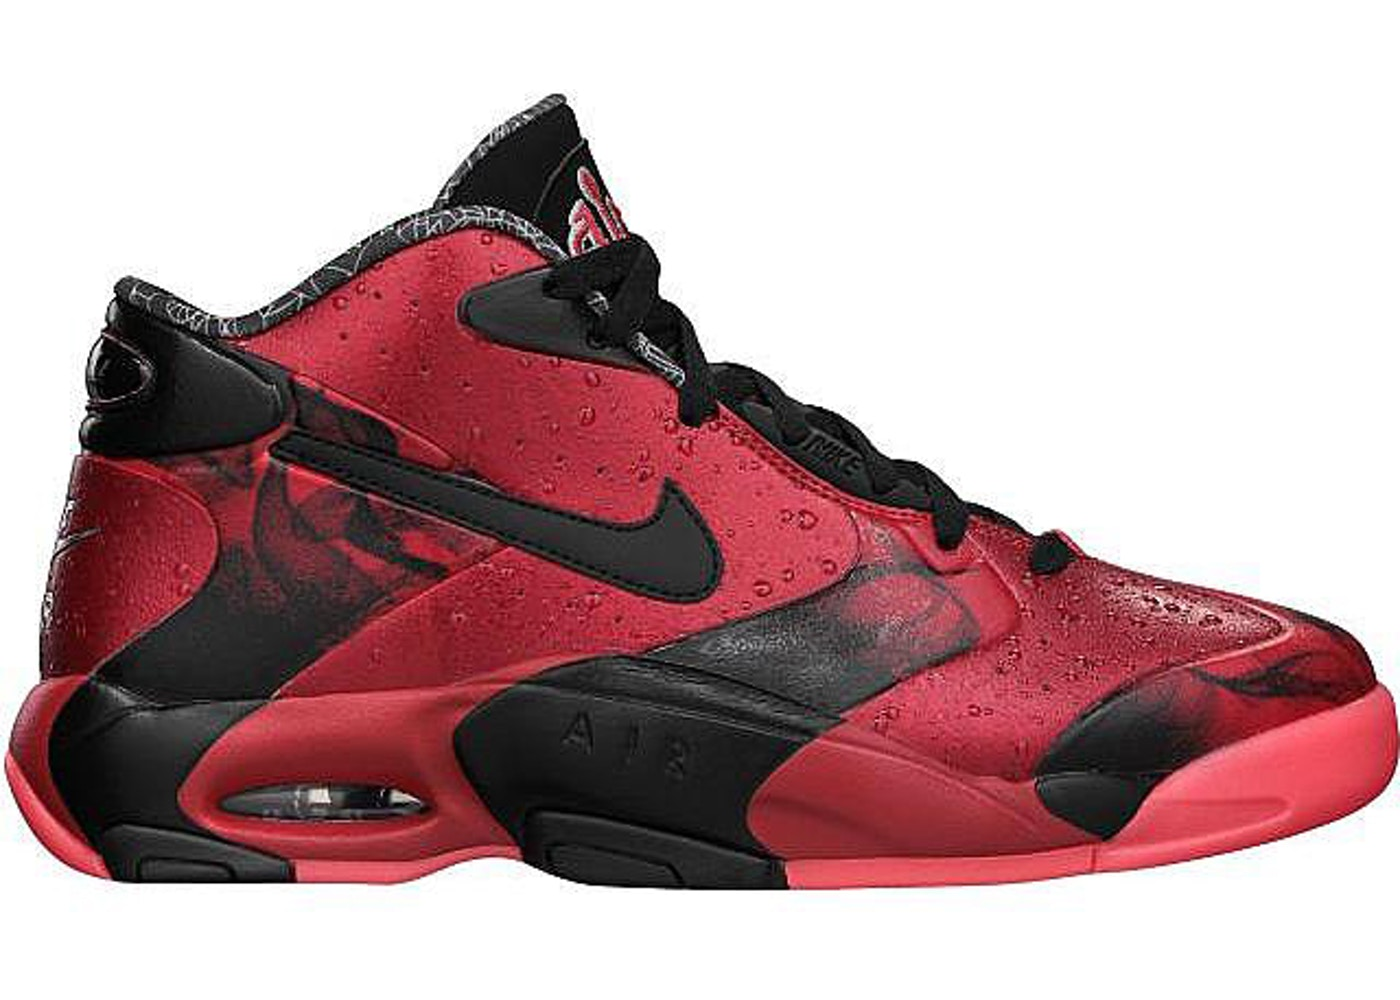 "ナイキ NIKE エア ""CRESCENT CITY"" スニーカー 【 AIR UP 14 NOLA GUMBO LEAGUE UNIVERSITY RED BLACK 】 メンズ"